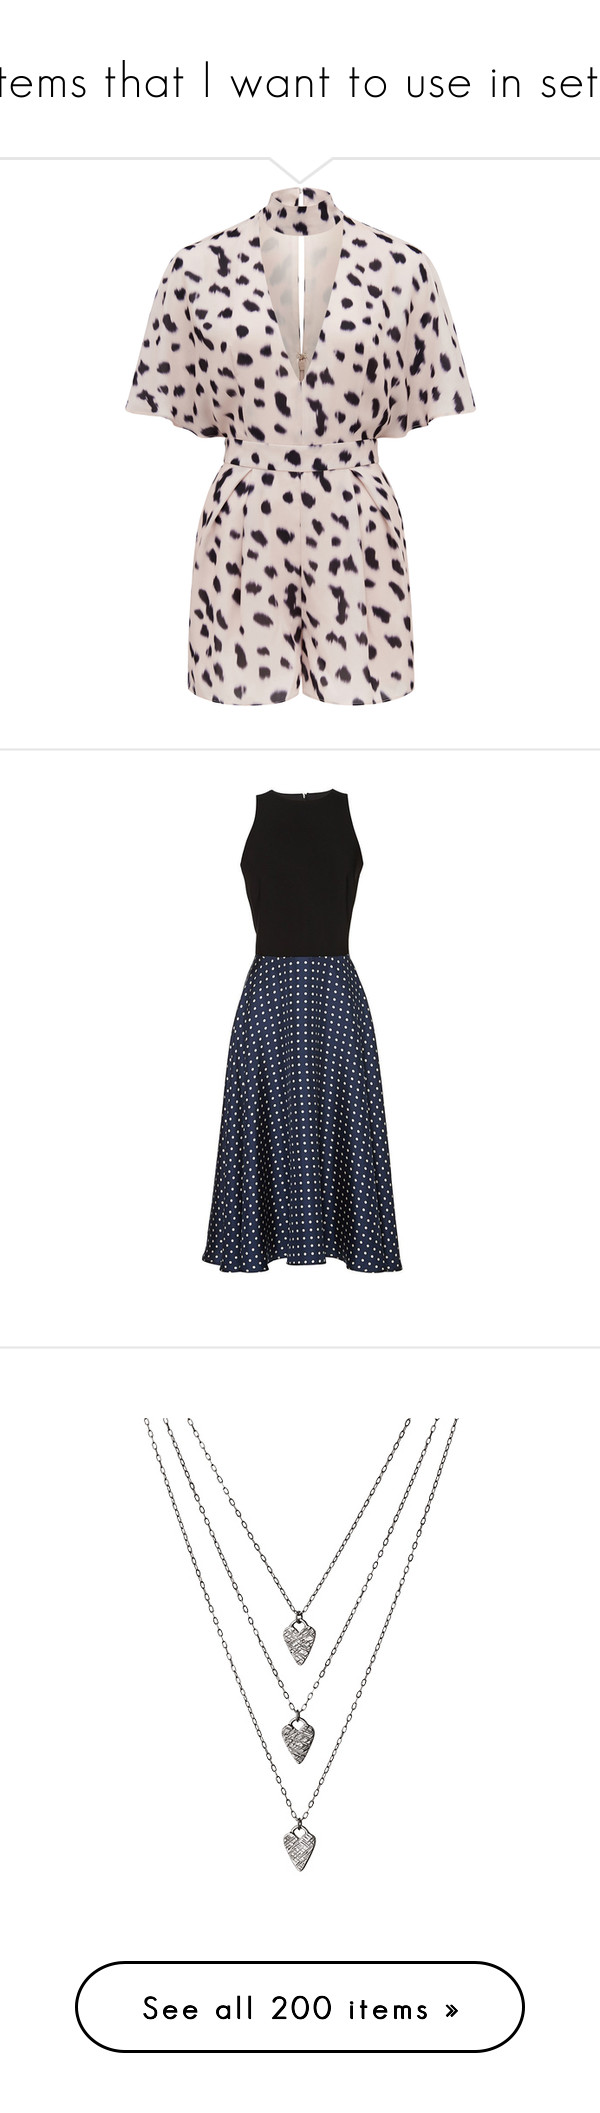 """""""Items that I want to use in sets"""" by danisalalkamis ❤ liked on Polyvore featuring dresses, mid length dresses, navy sleeveless dress, navy dress, swing dress, navy blue dress, jewelry, necklaces, accessories and collares"""